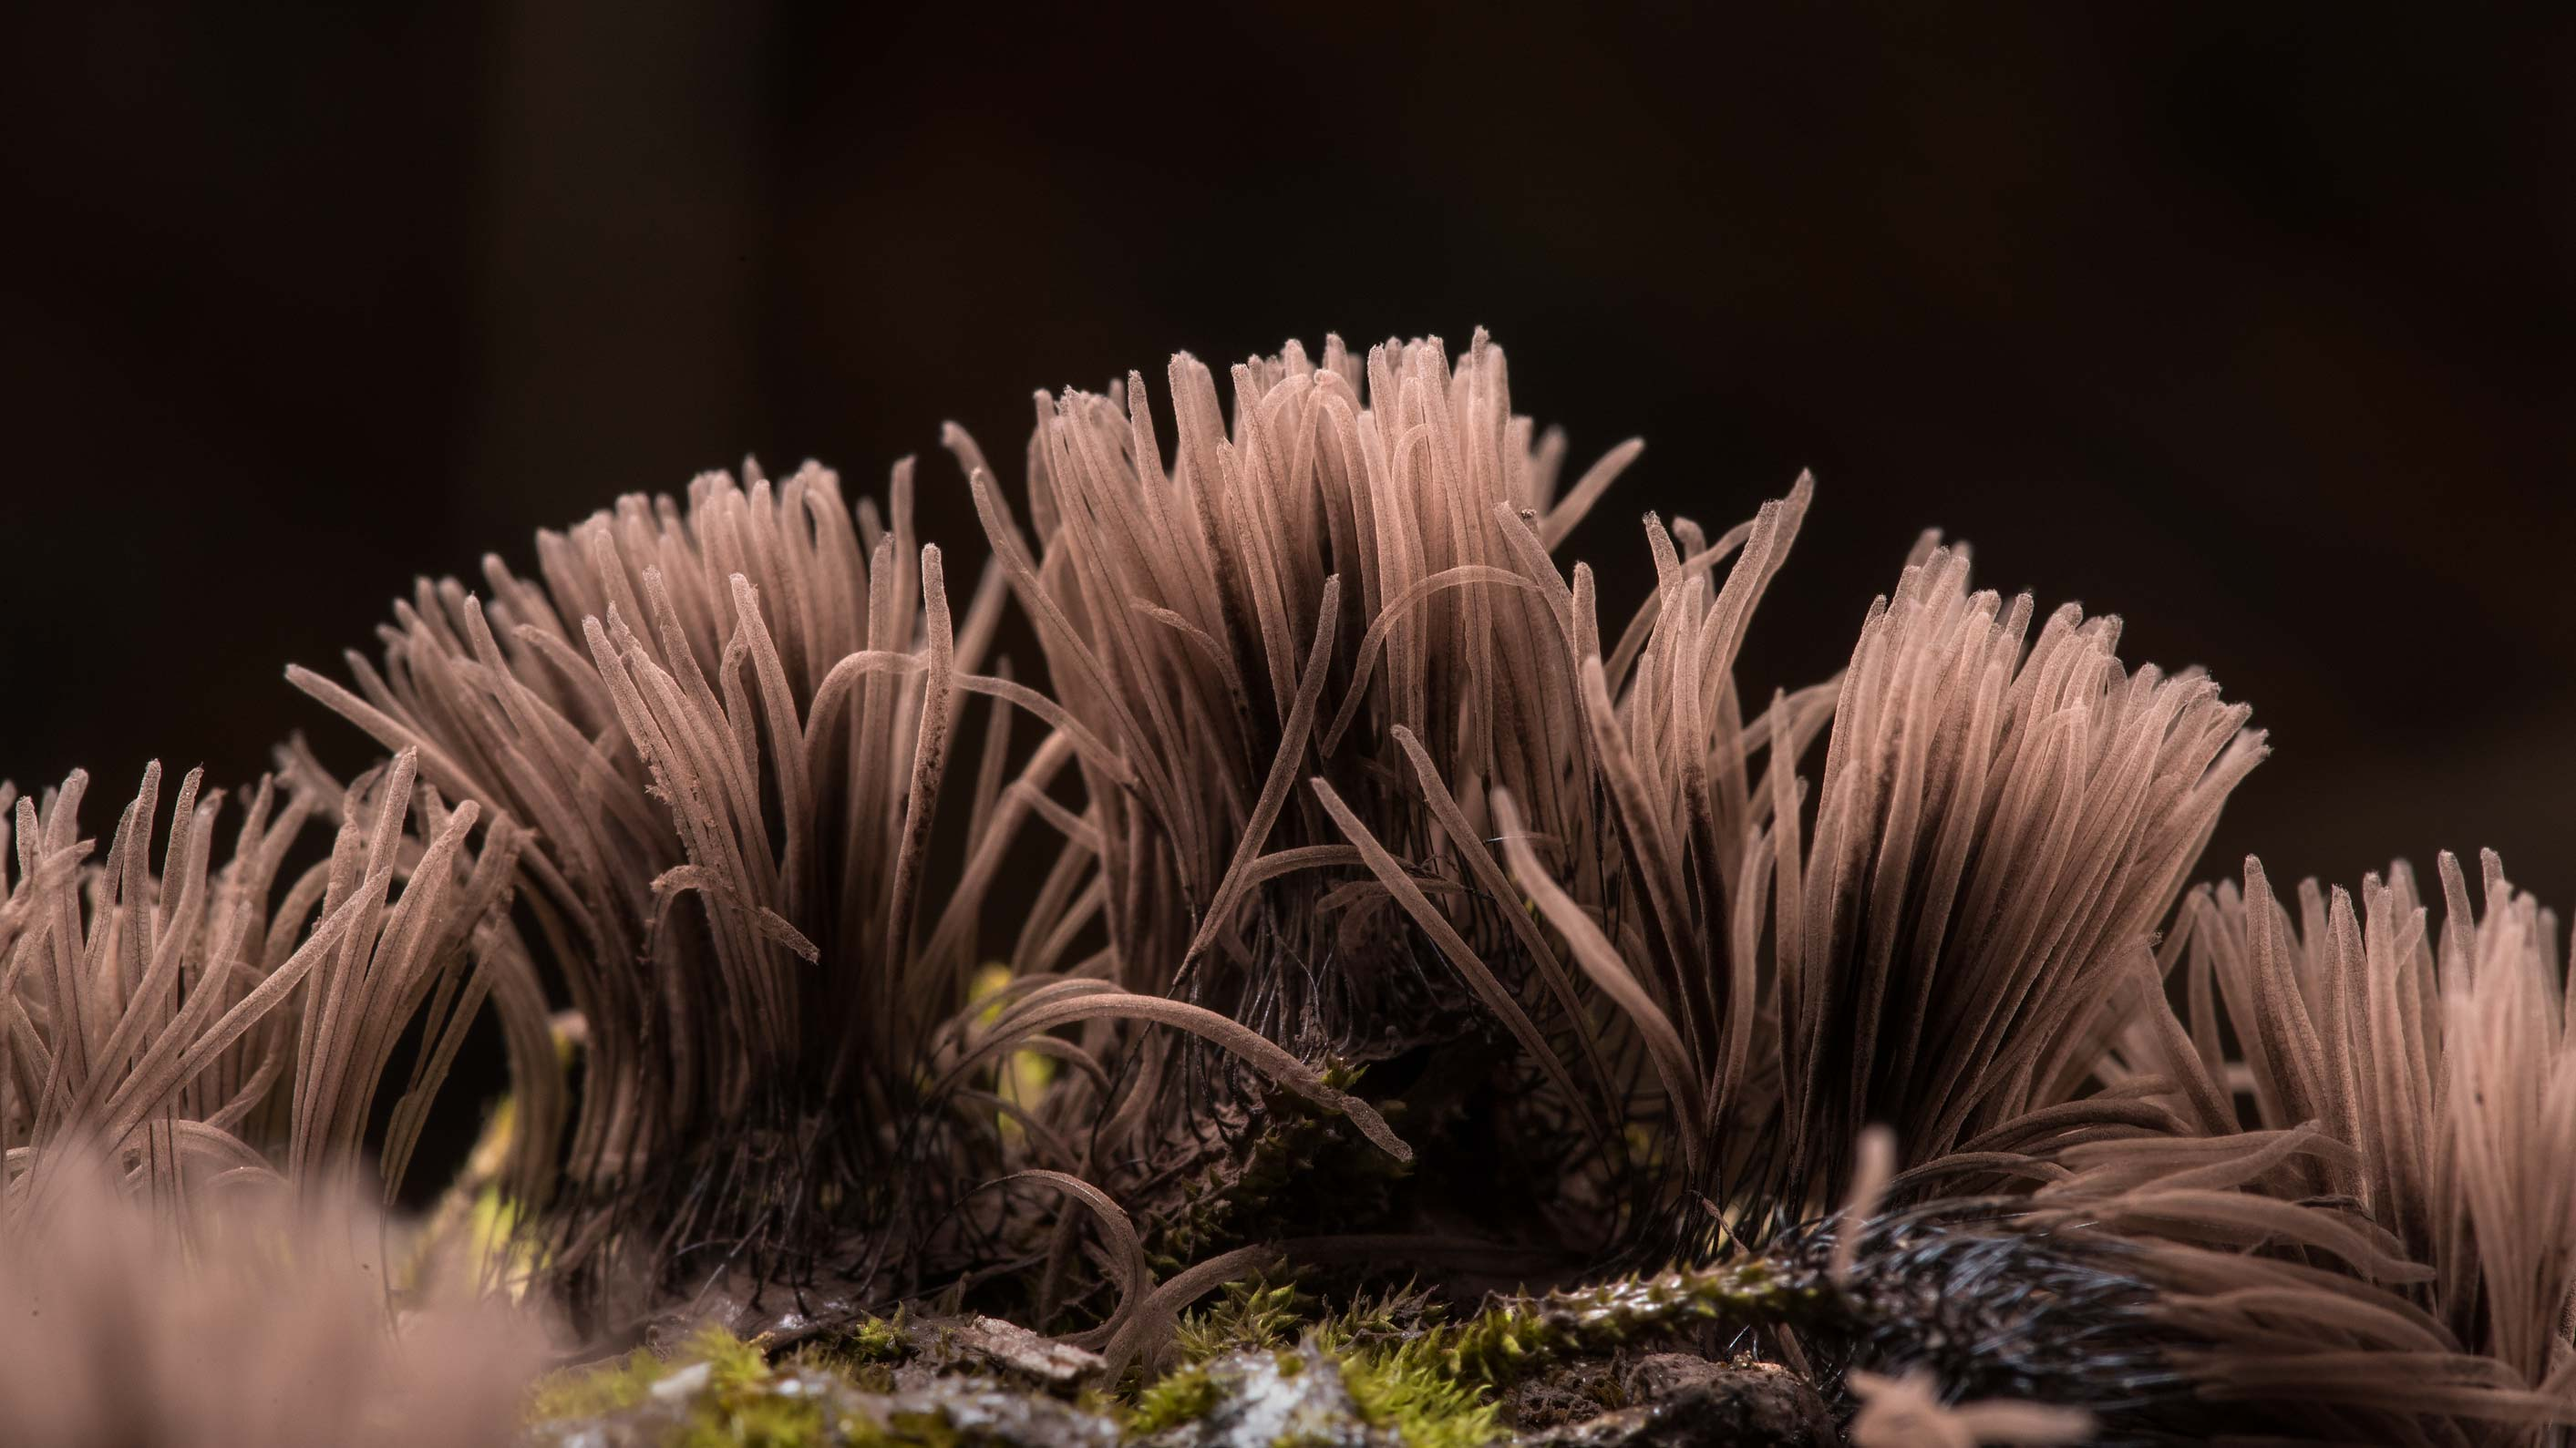 Brown sporangia of chocolate tube slime mold...National Forest. Richards, Texas